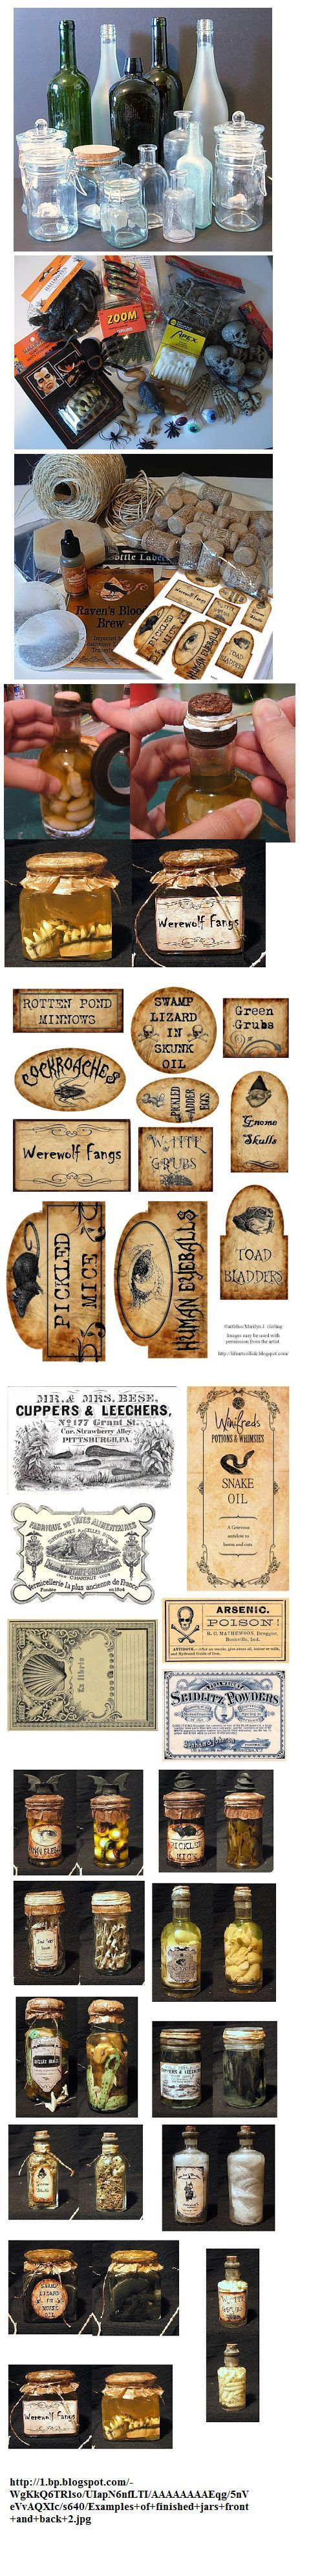 http://www.halloweenforum.com/halloween-crafts/108037-homemade-apothecary-jars.html examples of jars- great results!